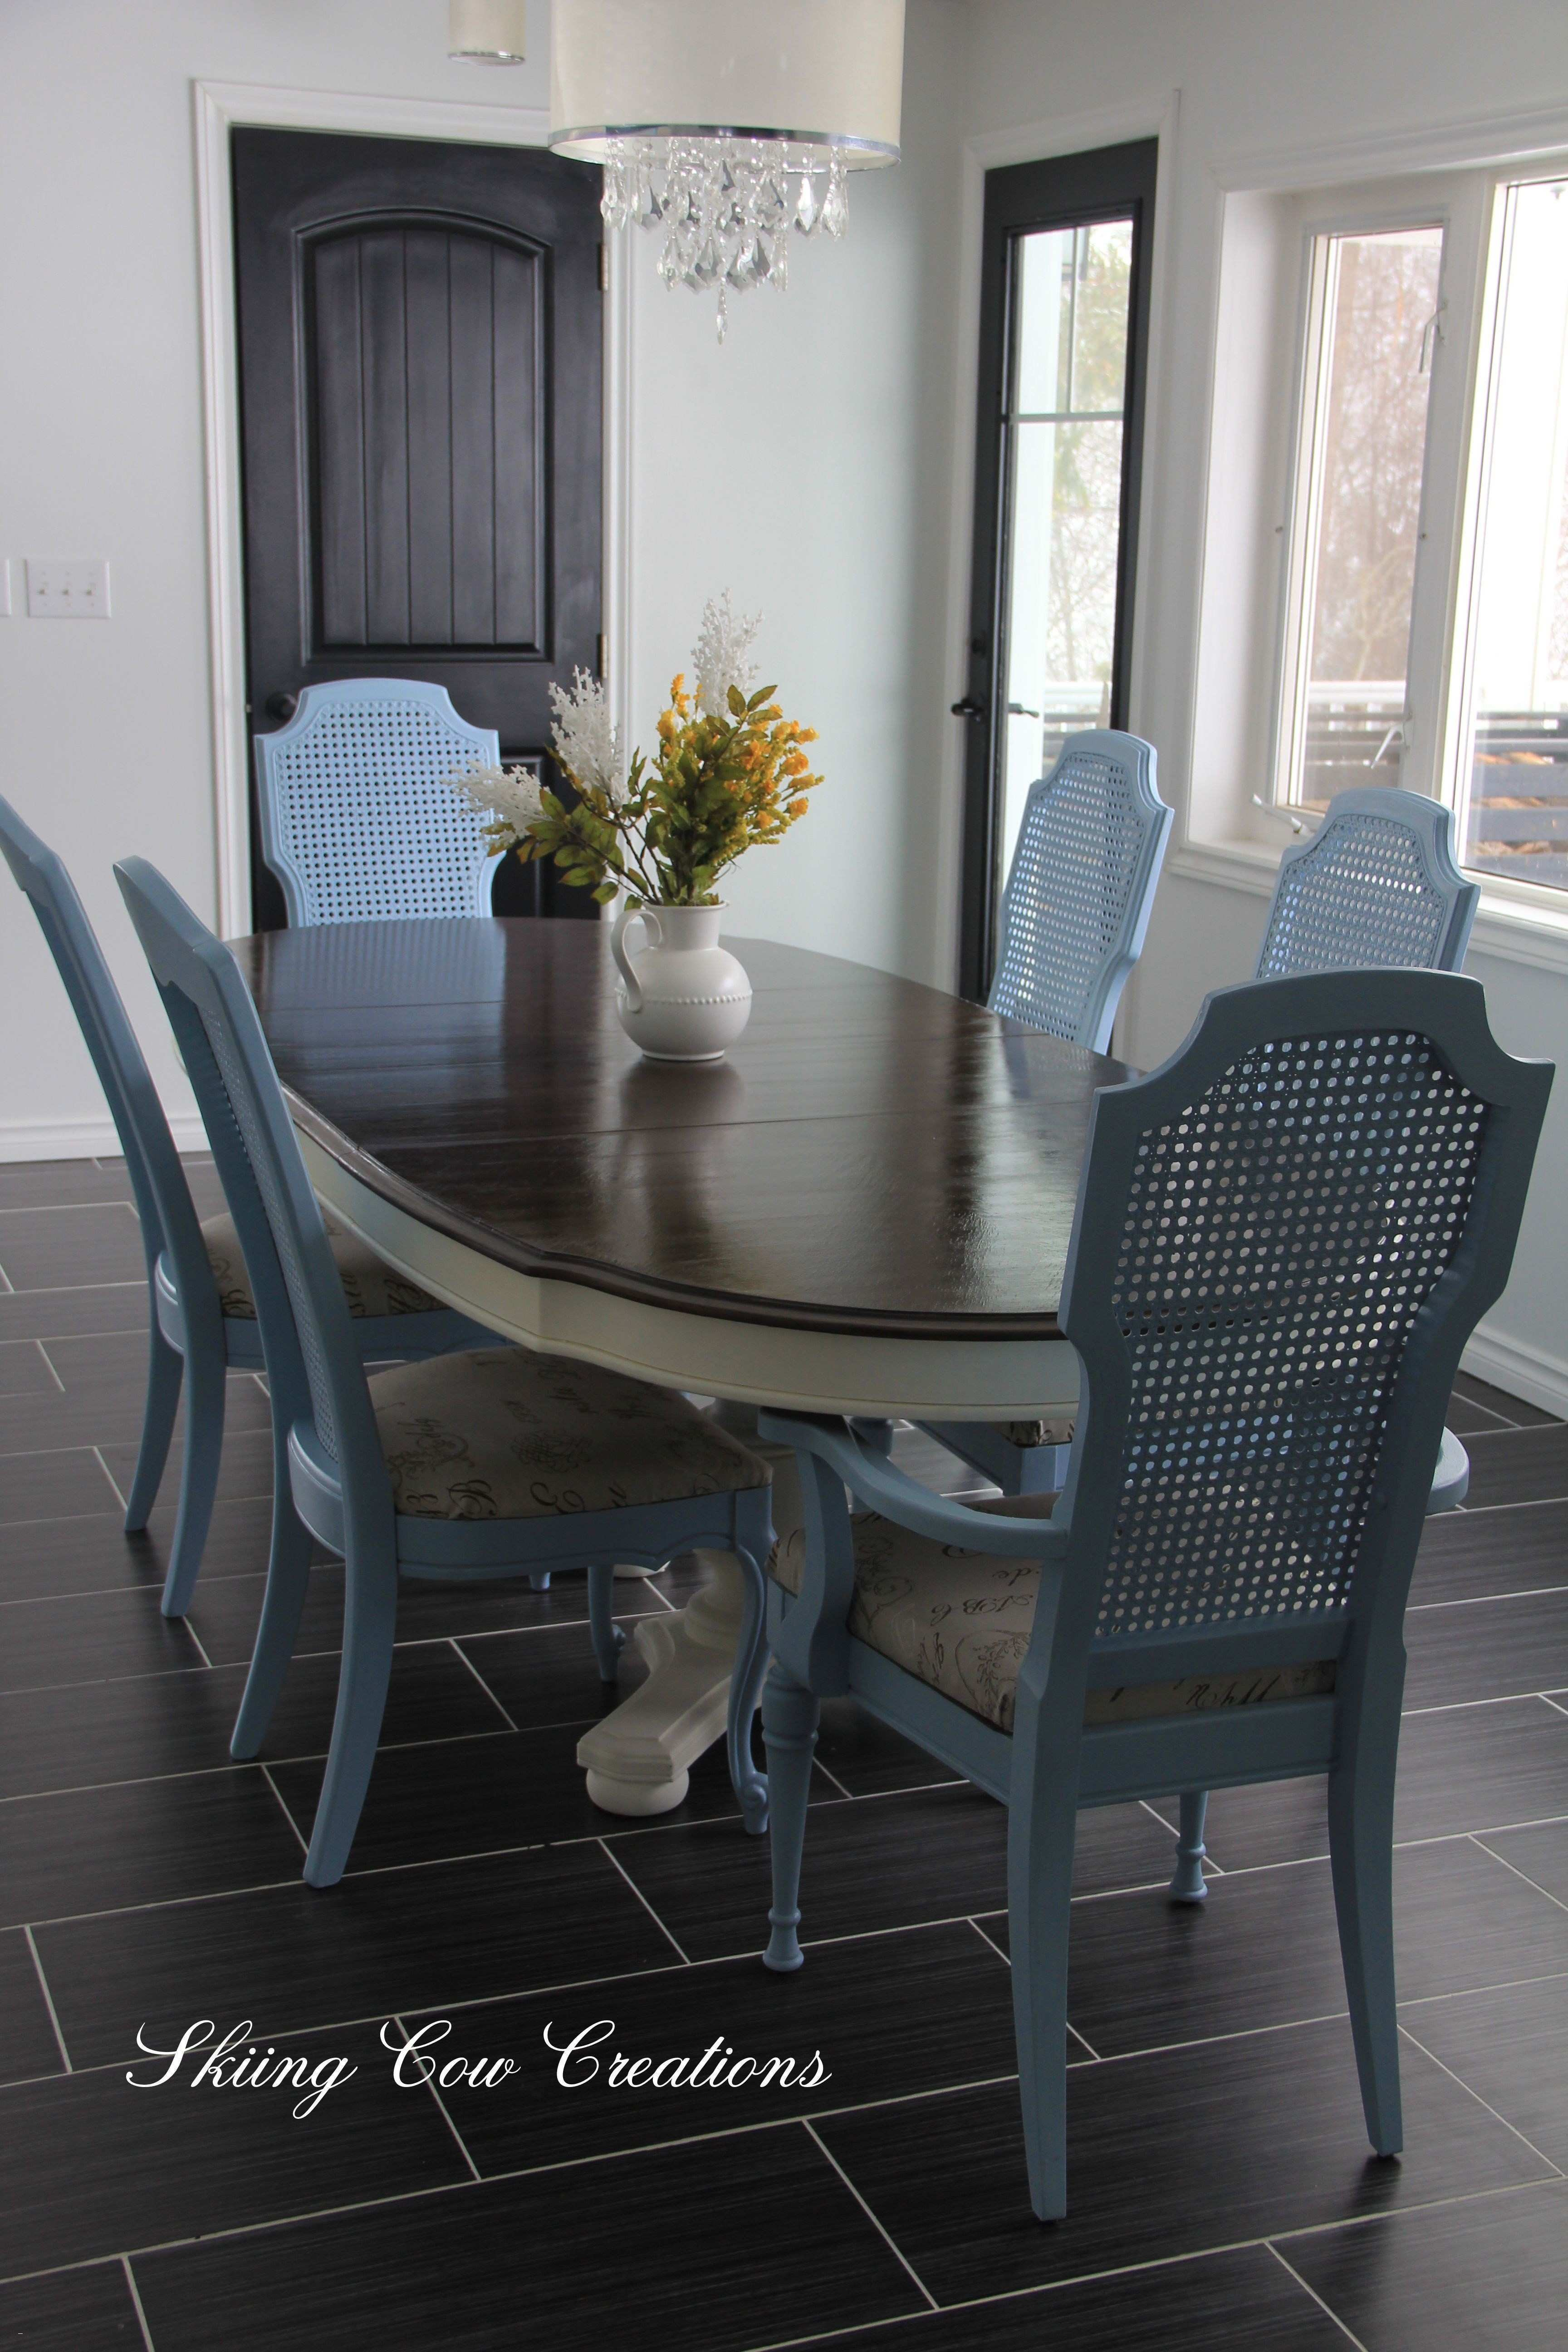 Unique 25 Dining Room Decorating Ideas with Chair Rail Scheme